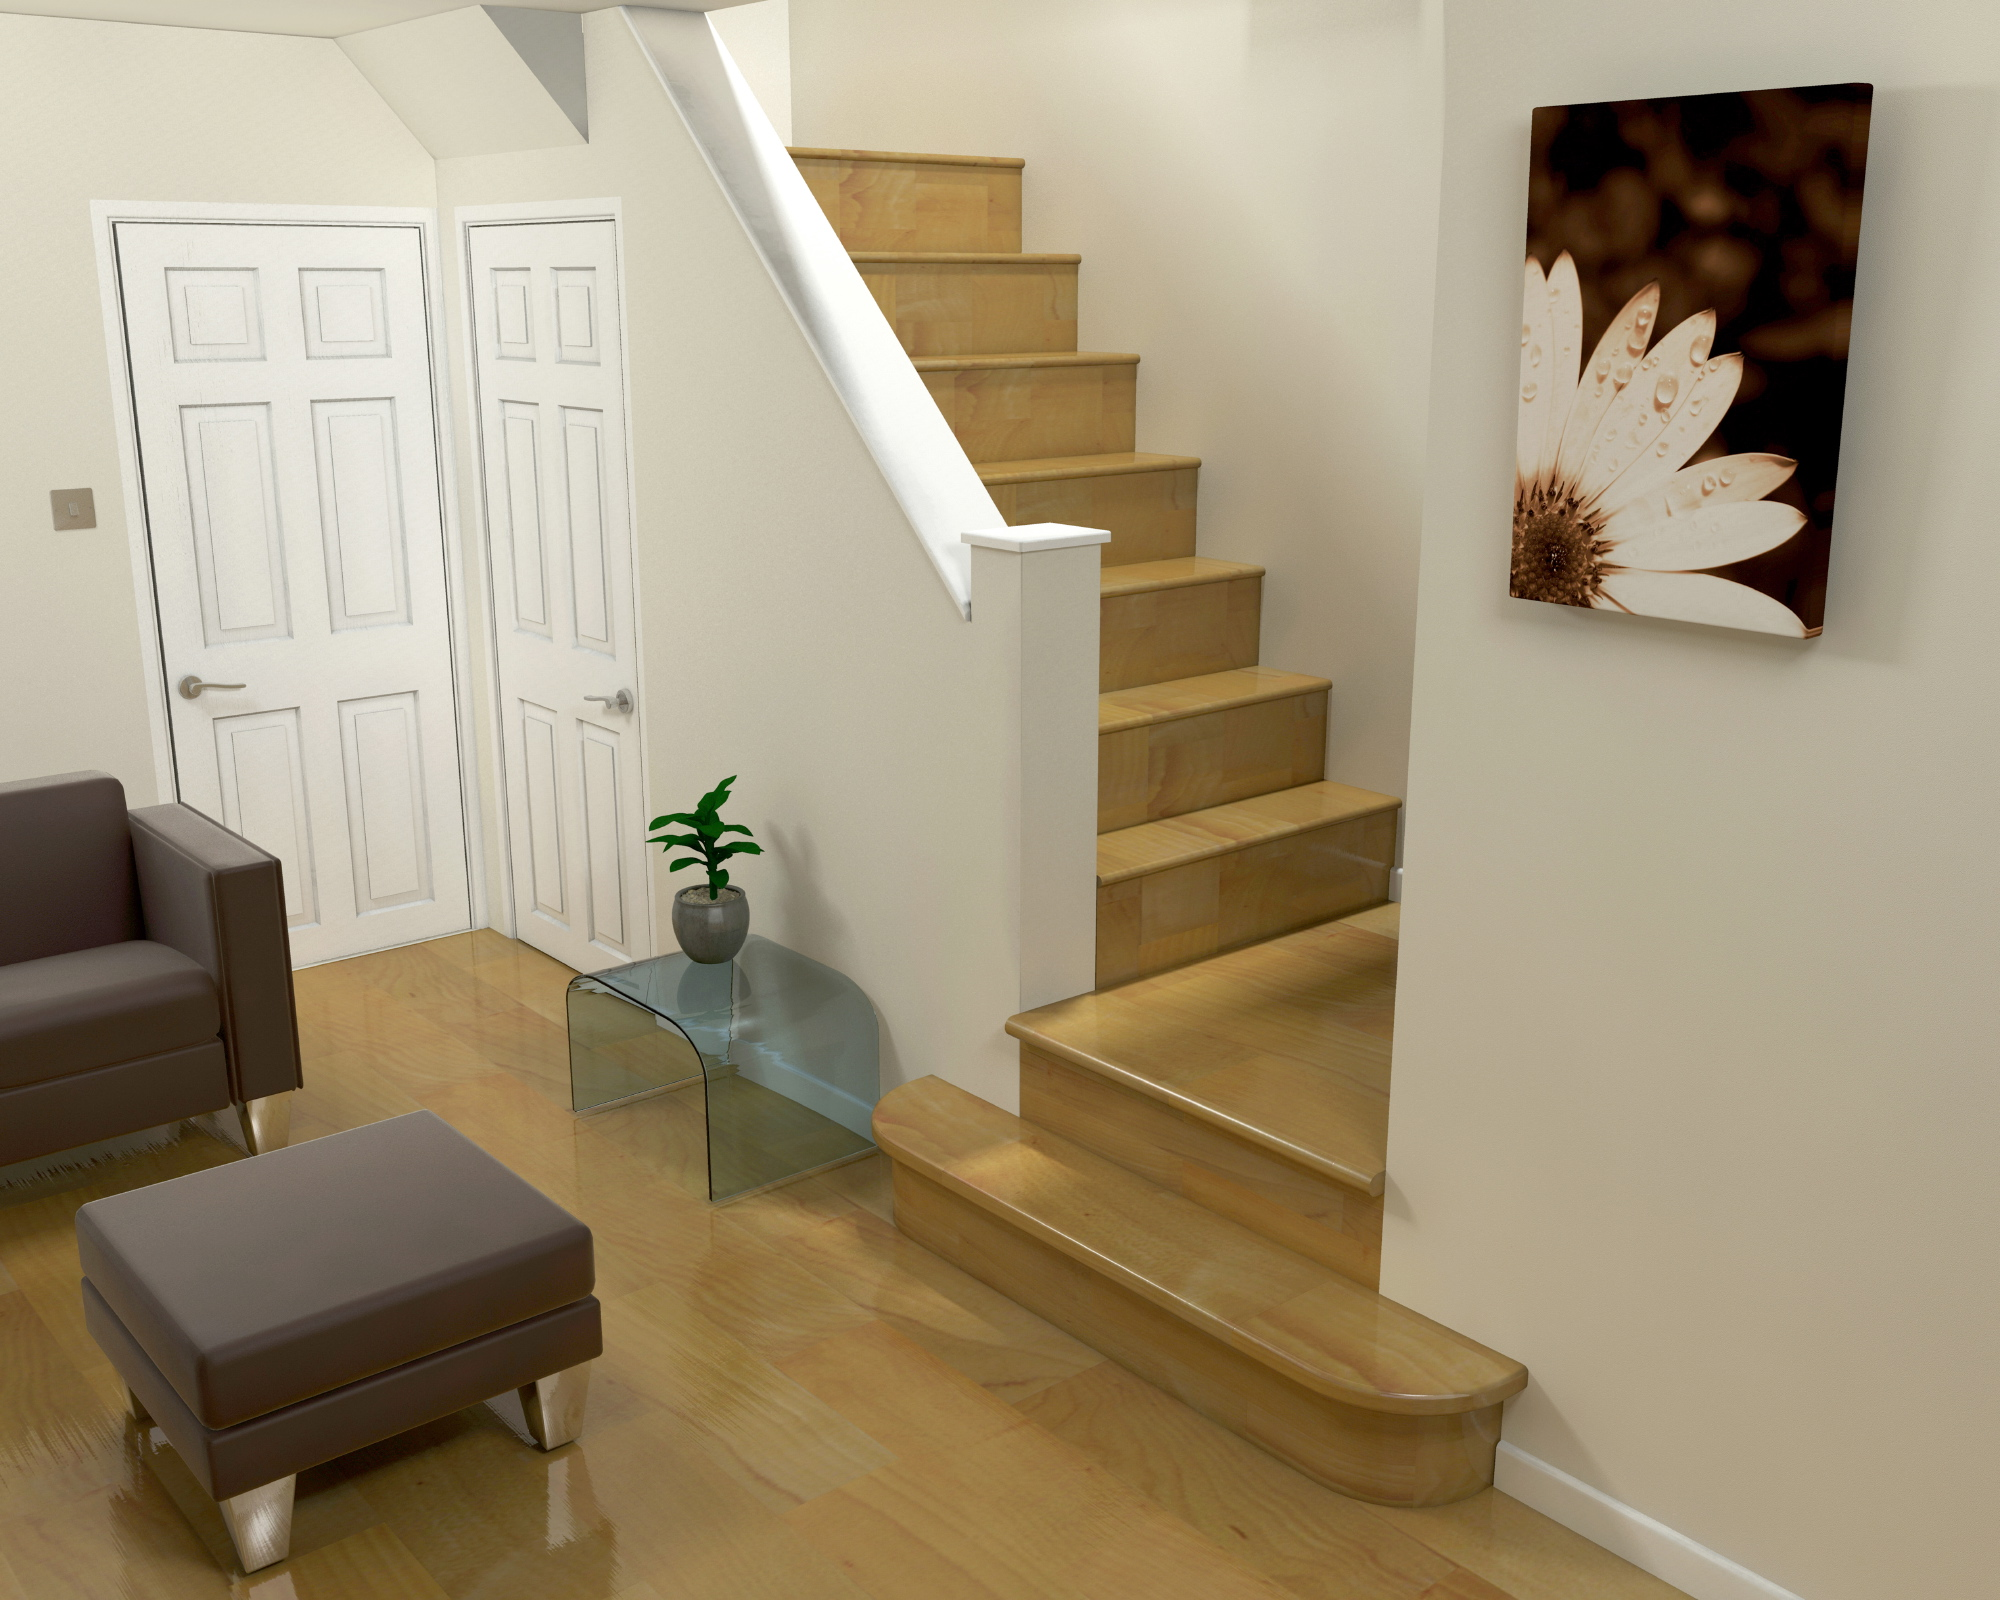 Interior Design Marbella 3d Design Of A Room With Stairs